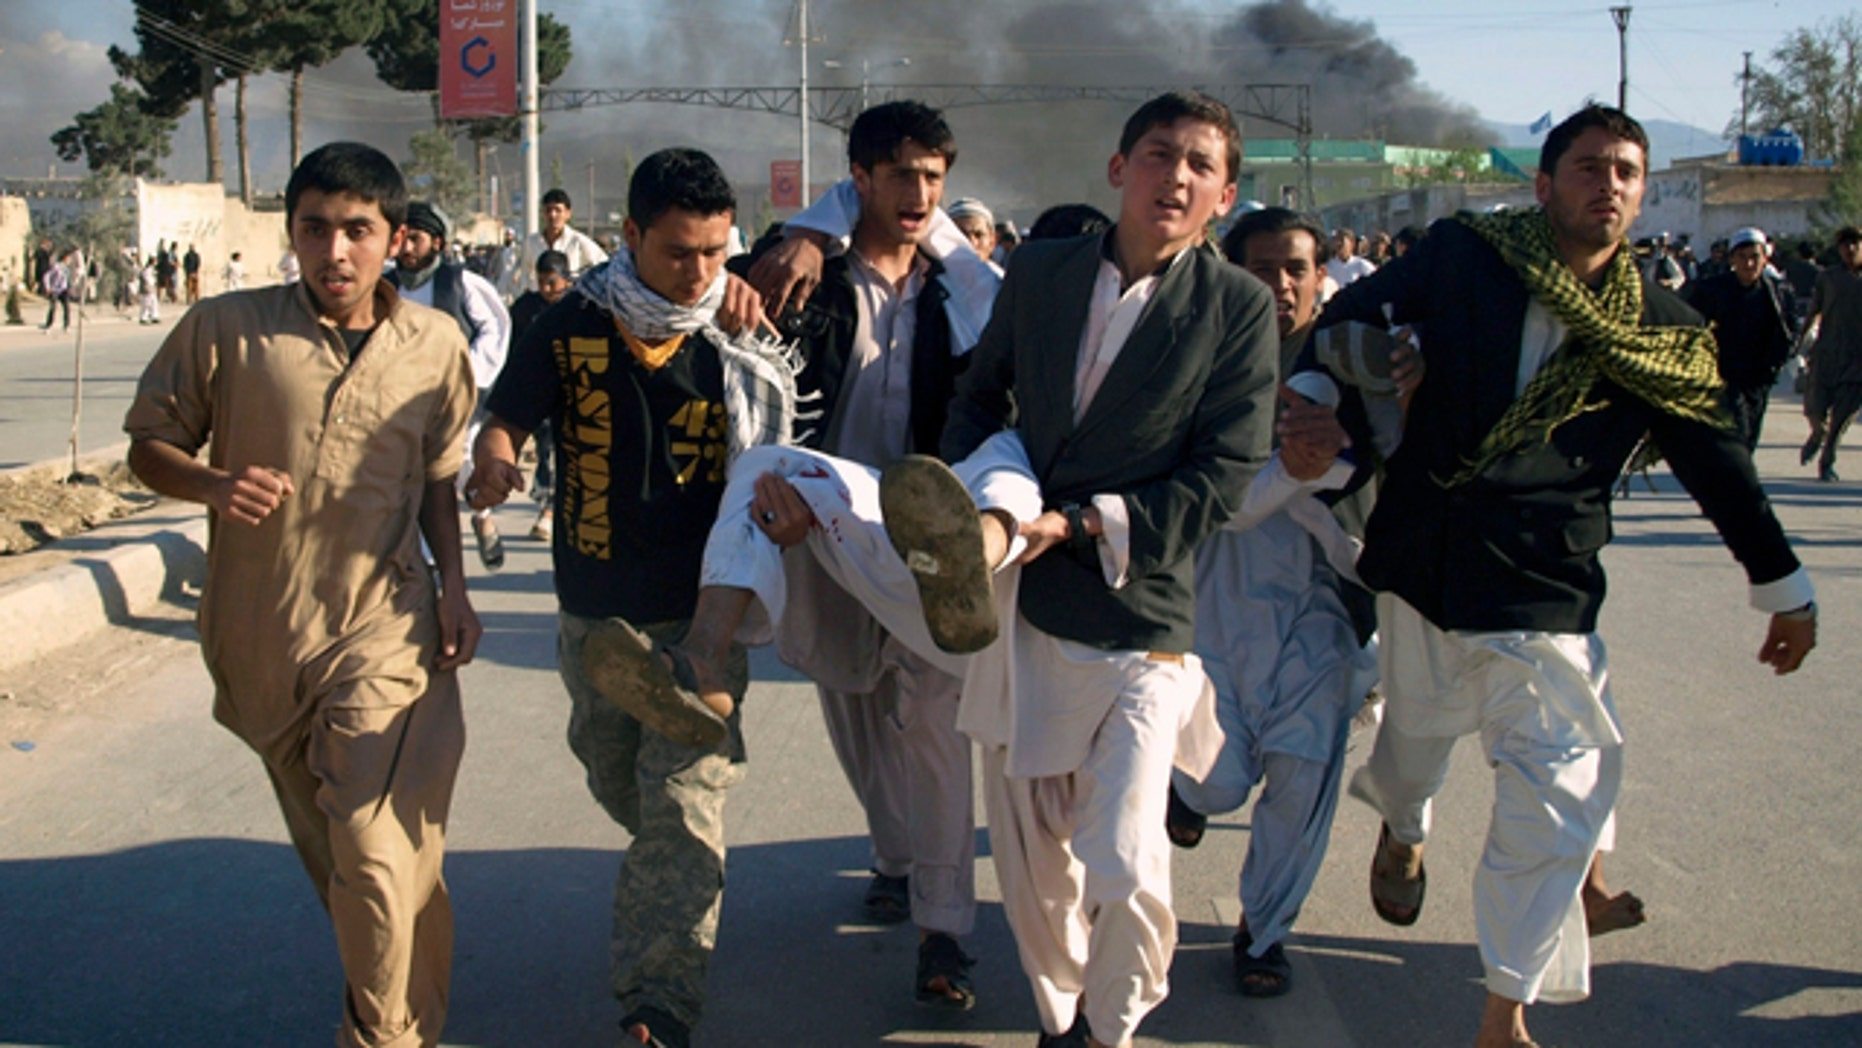 April 1: Afghans carry a man who was wounded following an attack on UN's office during a demonstration to condemn the burning of a copy of the Muslim holy book by a Florida pastor, in Mazar-i- Sharif north of Kabul, Afghanistan. An Afghan official says seven people have been killed at a U.N. office in the northern city of Mazar-i-Sharif when a Koran-burning protest turned violent. (AP)